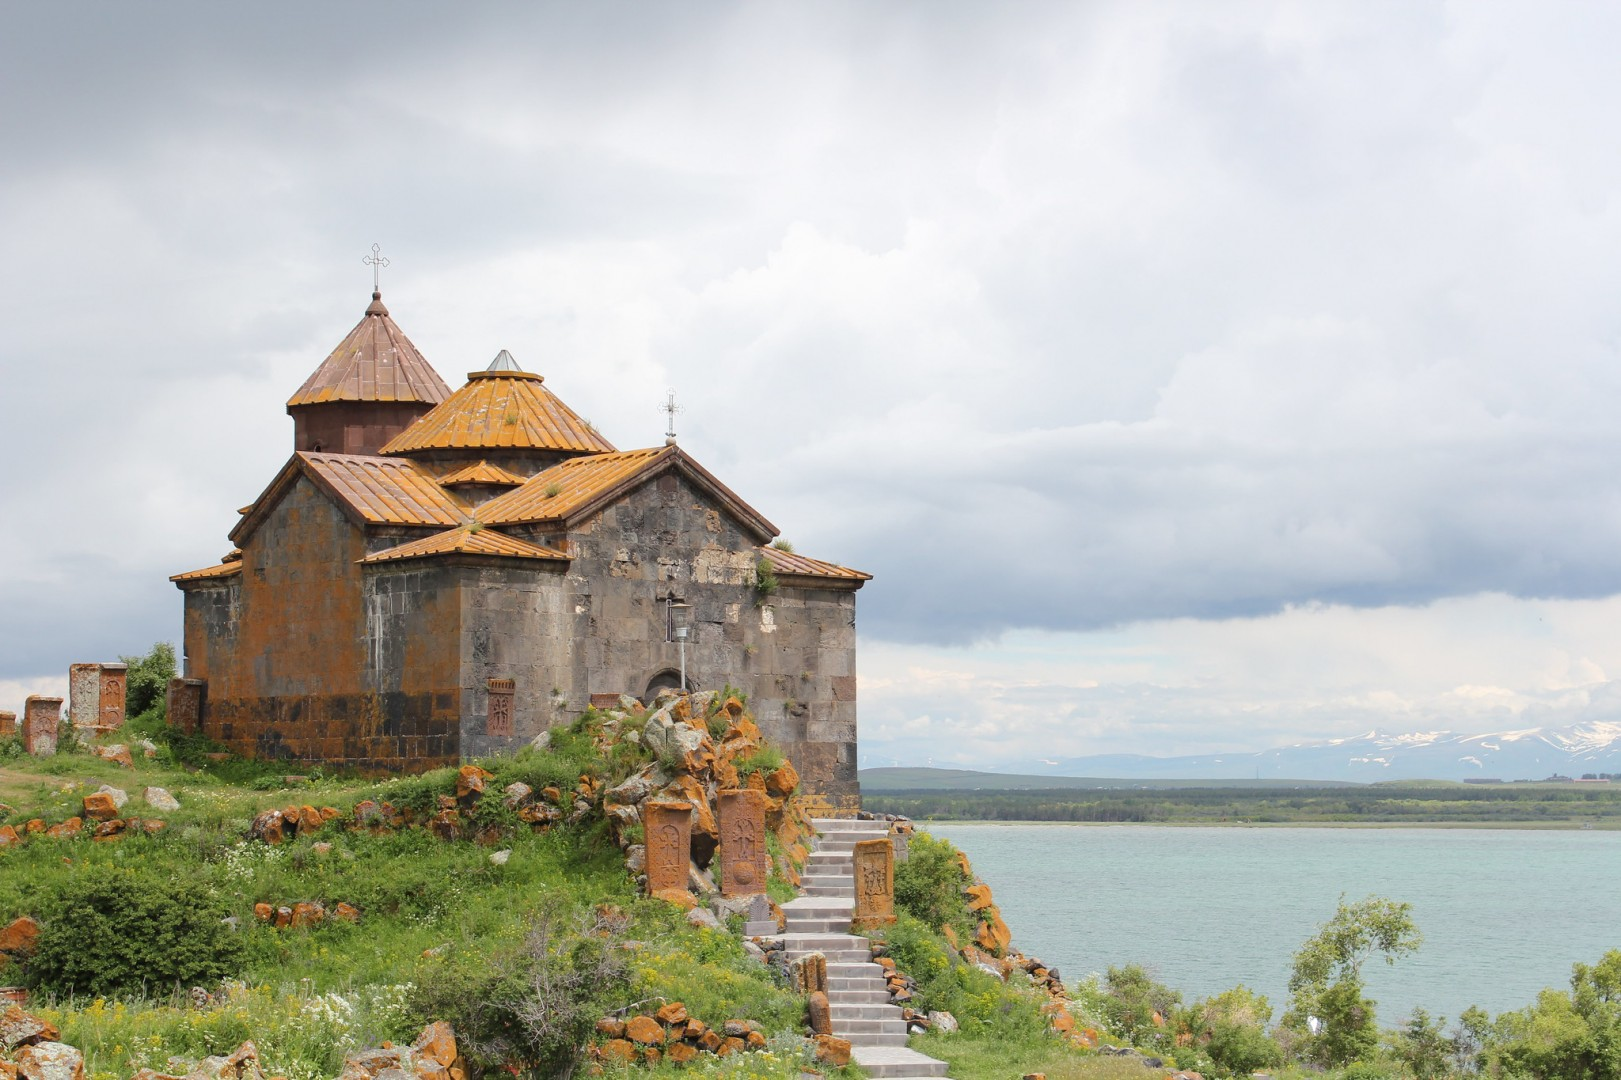 The winning EPCs of the Lake Sevan project proposed a US$0.0419/kWh tariff (Credit: Flickr / Arian Zwegers)